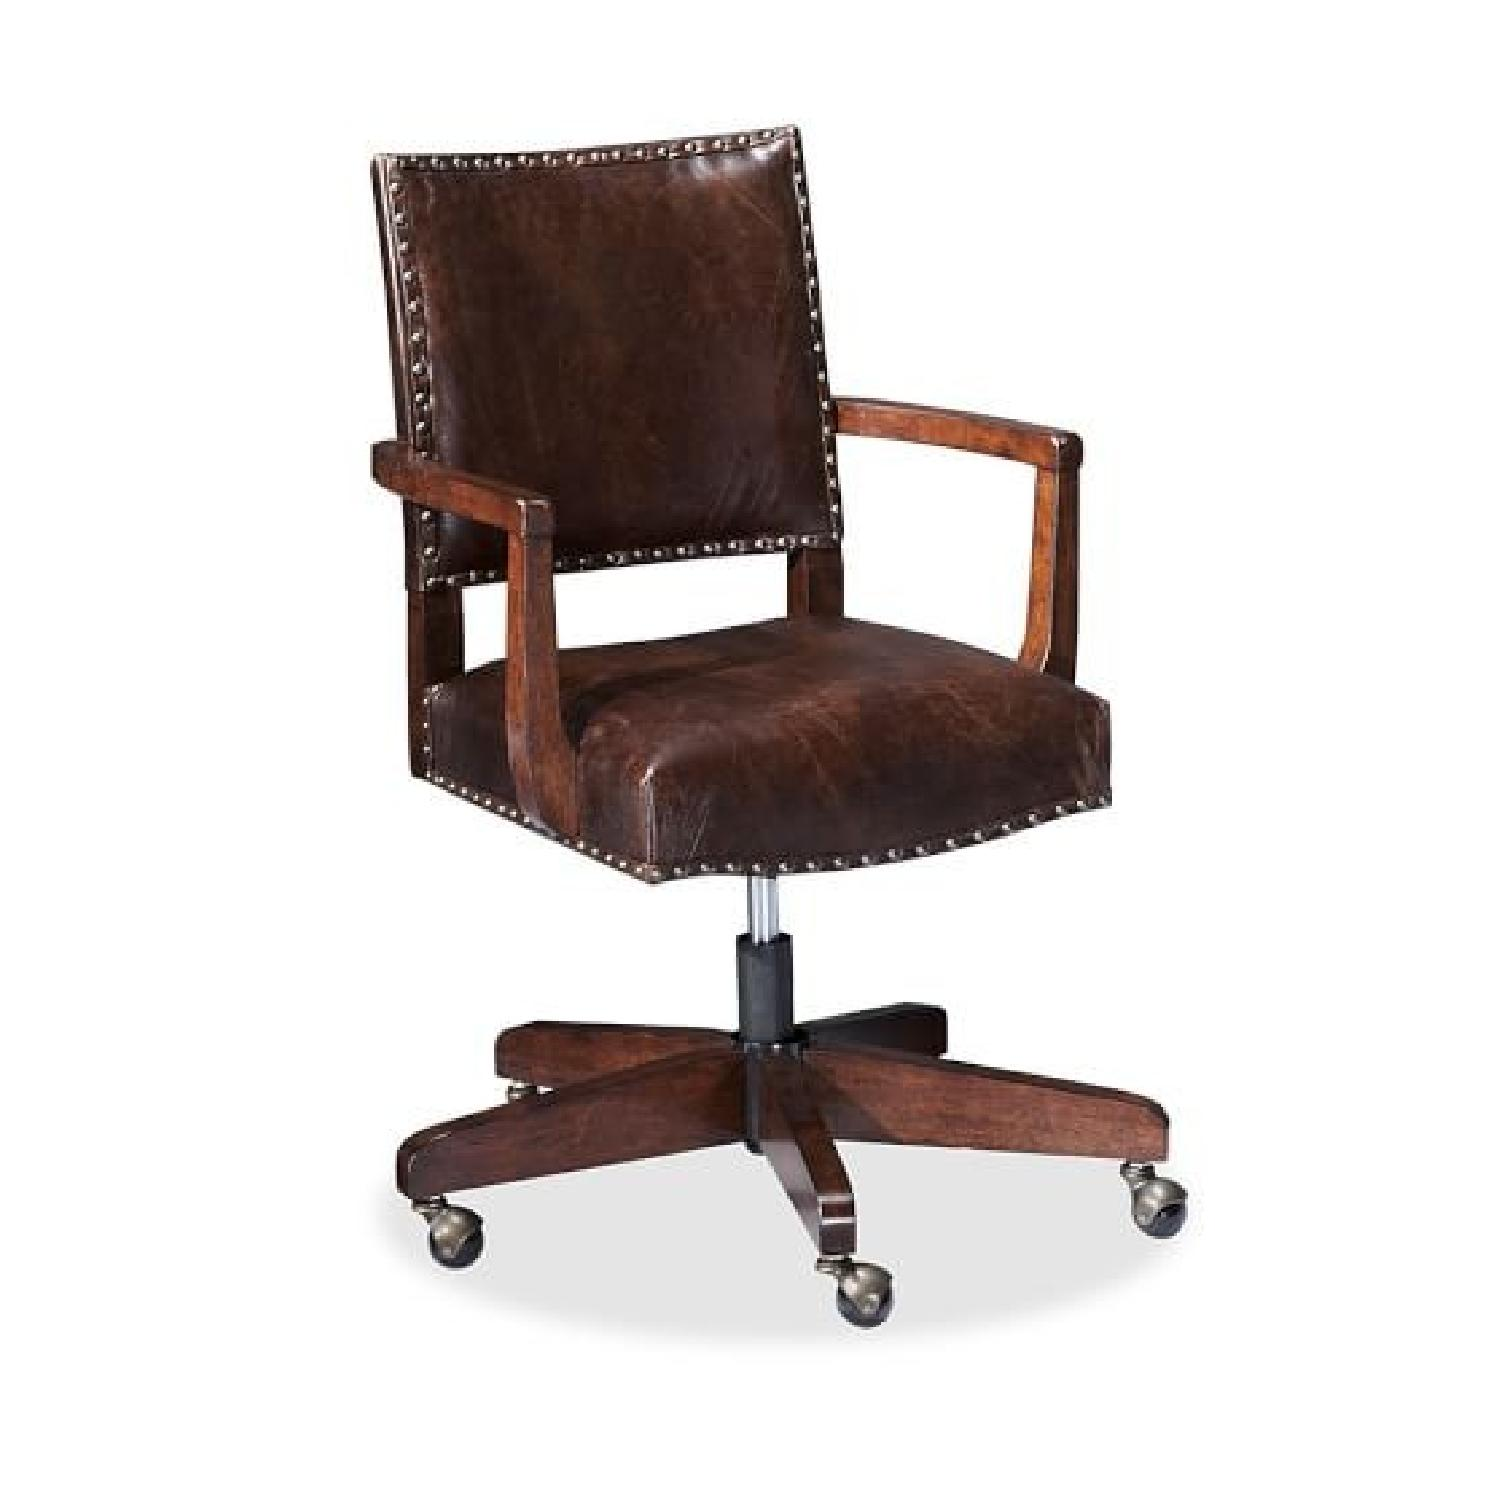 Pottery Barn Manchester Leather Swivel Desk Chair